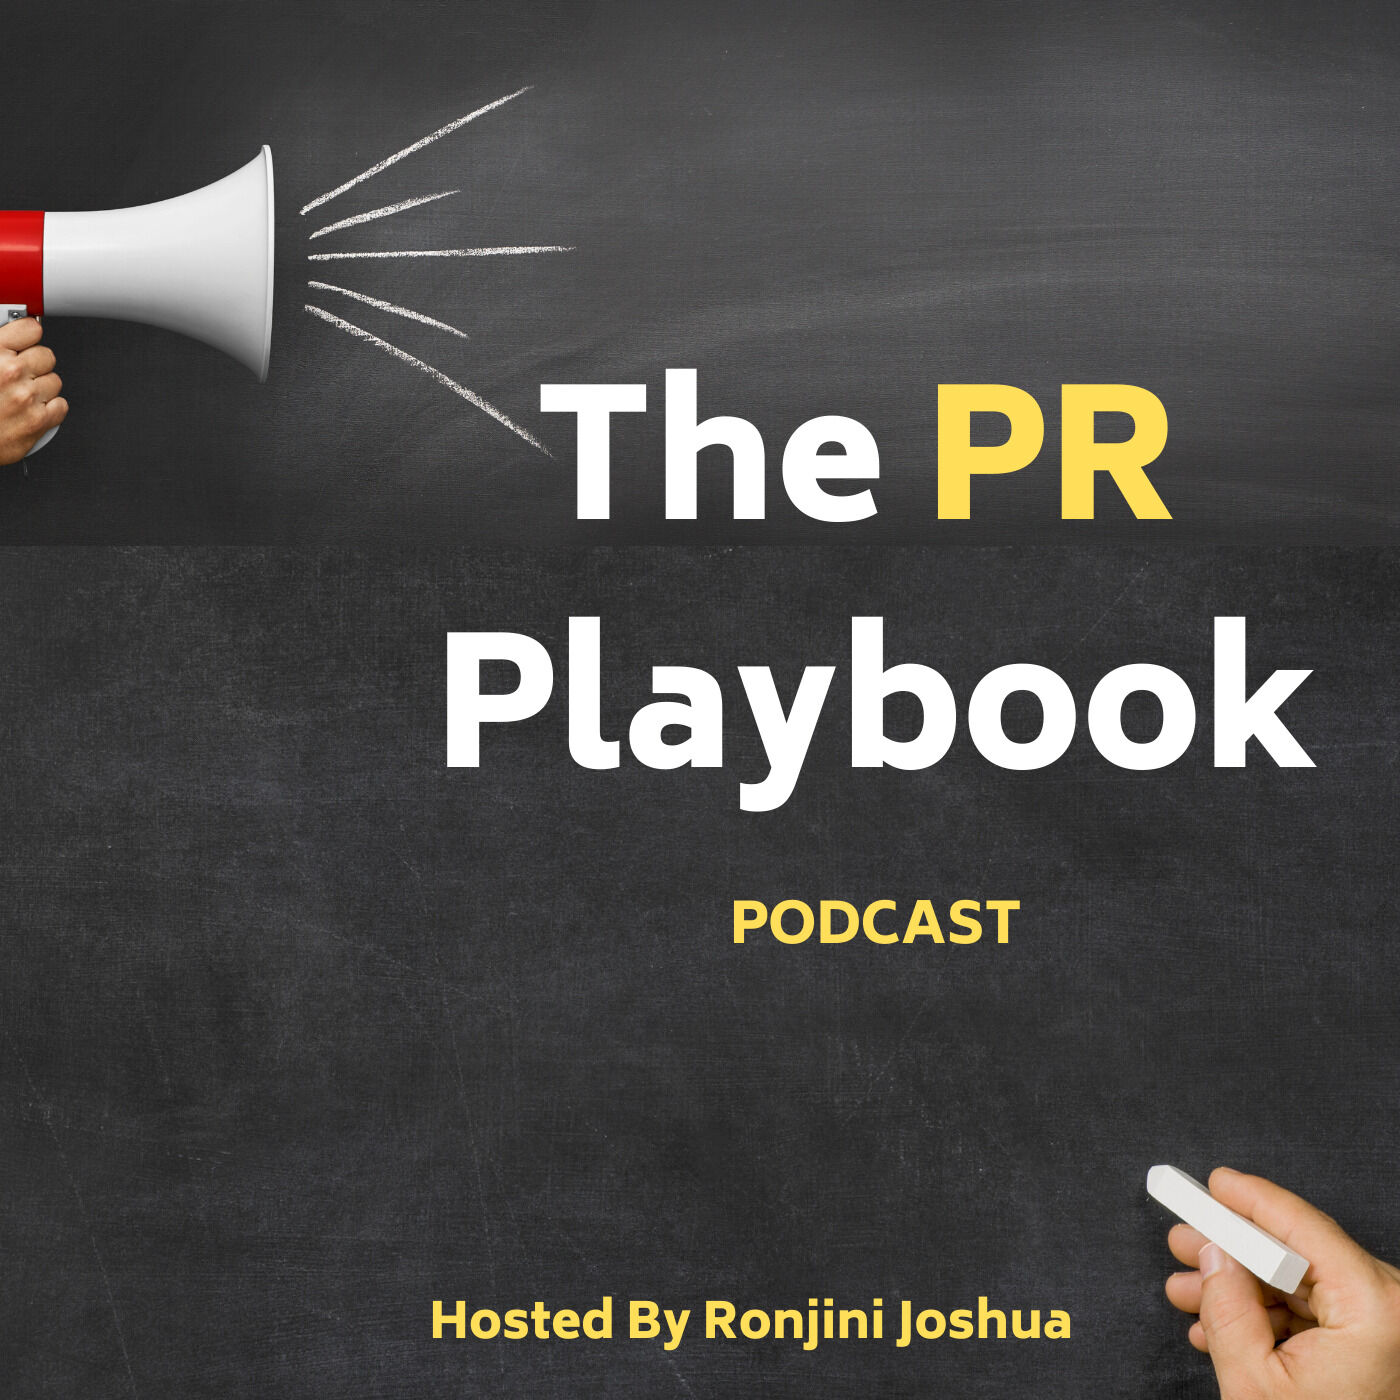 The PR Playbook Podcast